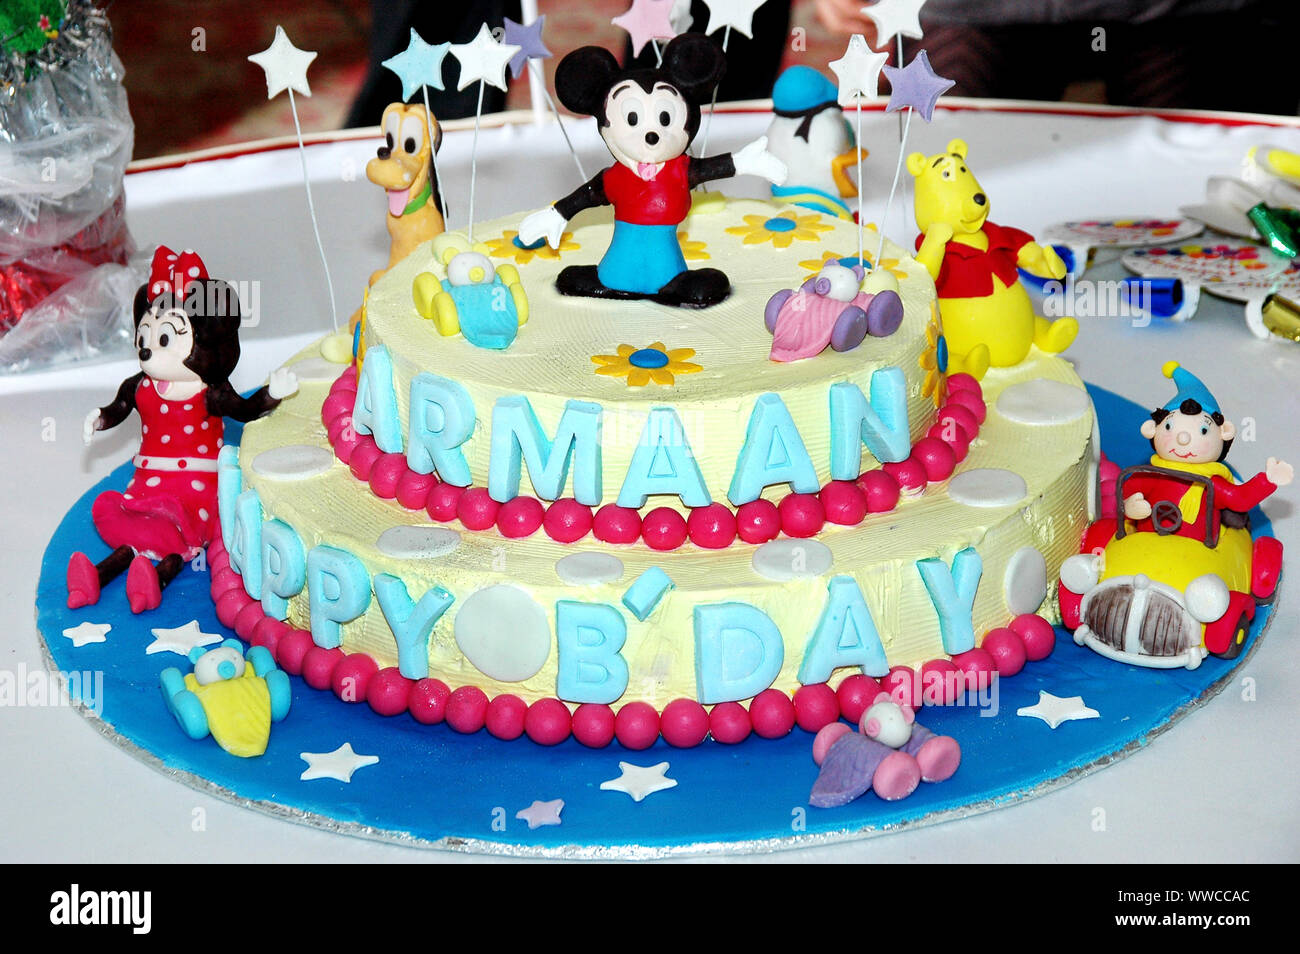 Colorful birthday cake decorated with little cartoon characters on the top. Stock Photo